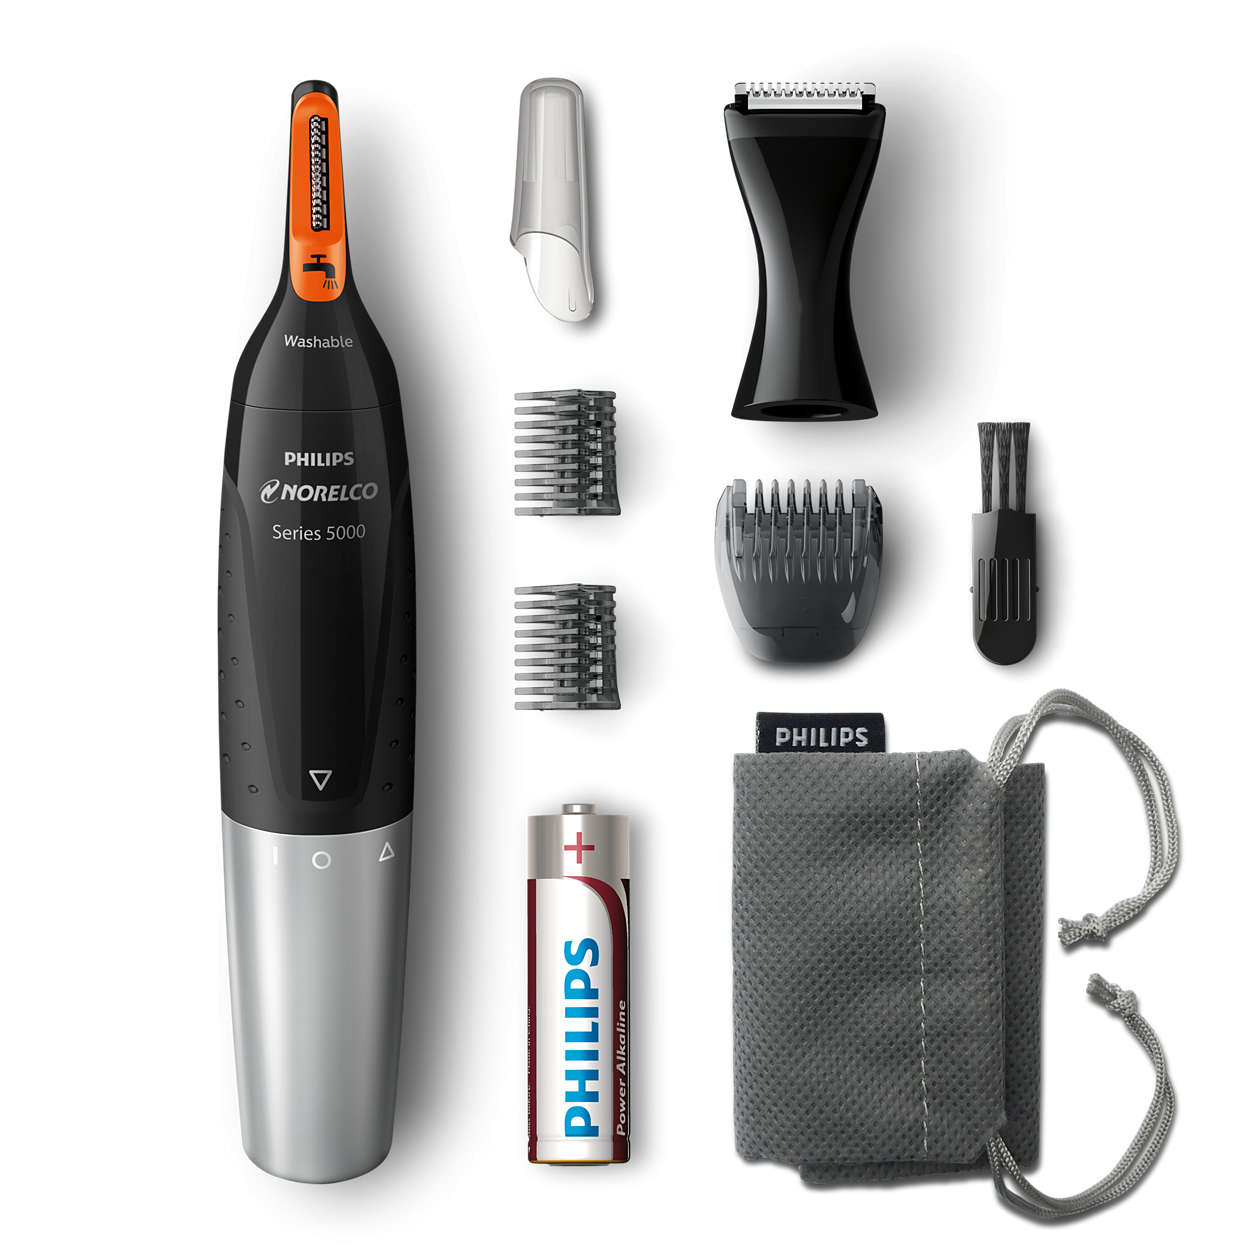 Norelco Nose Trimmer with Advanced Protec-Tube Technology With DualCut Detail Trimmer & Facial Styling BONUS FREE Battery and Carry Pouch Included